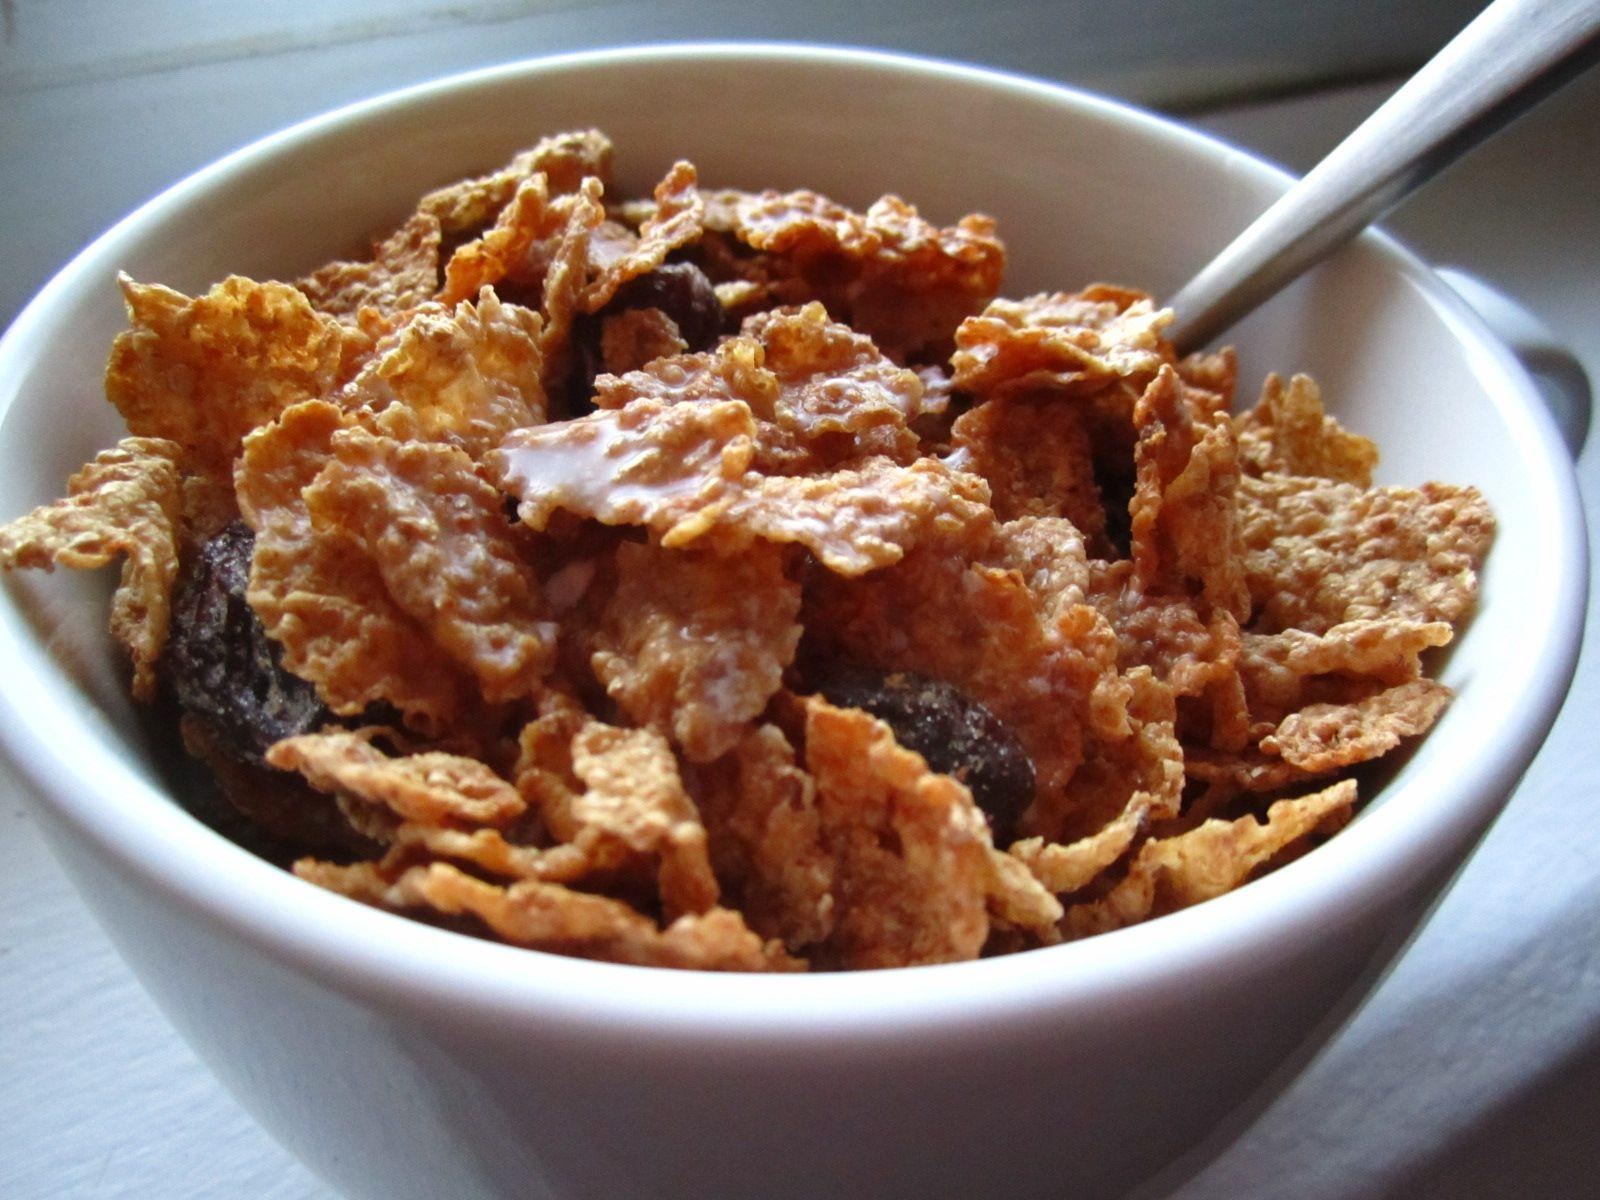 Raisin Bran Cereal Wallpapers and Backgrounds Image